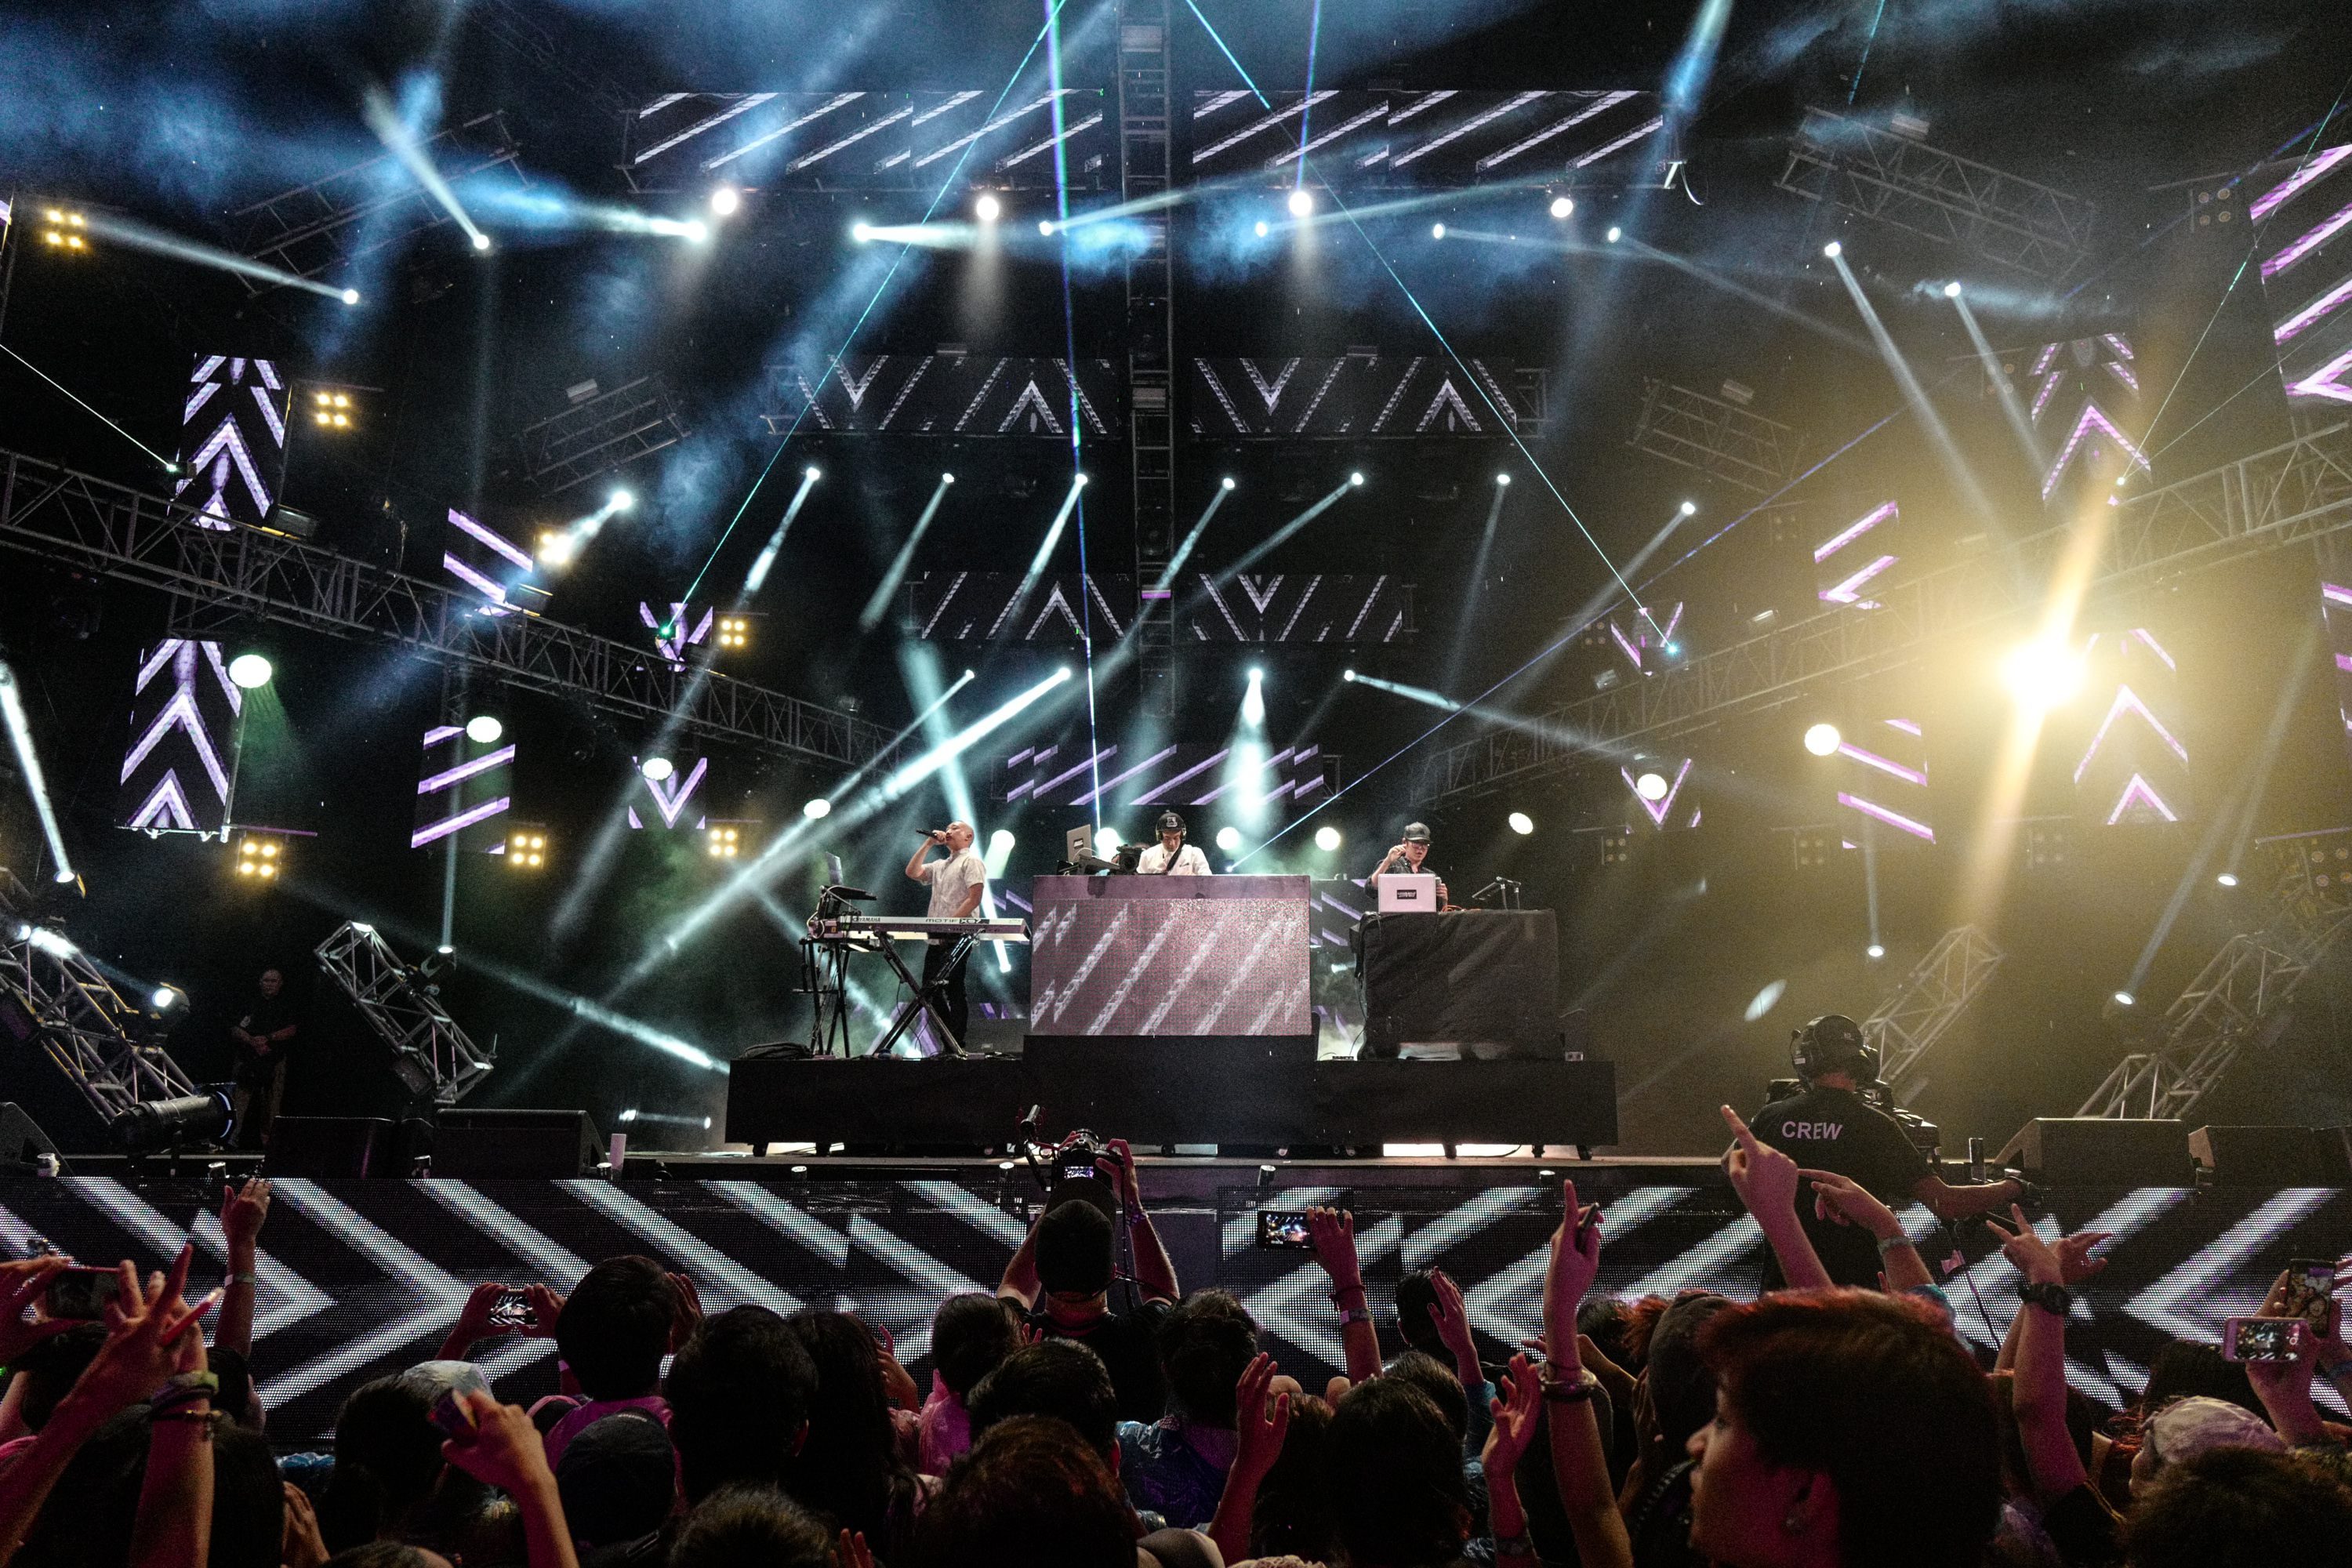 Far-East-Movement-performs-at-MTV-Music-Evolution-Manila-2016-on-24-Jun-Pic-4-Credit-MTV-AsiaKristia